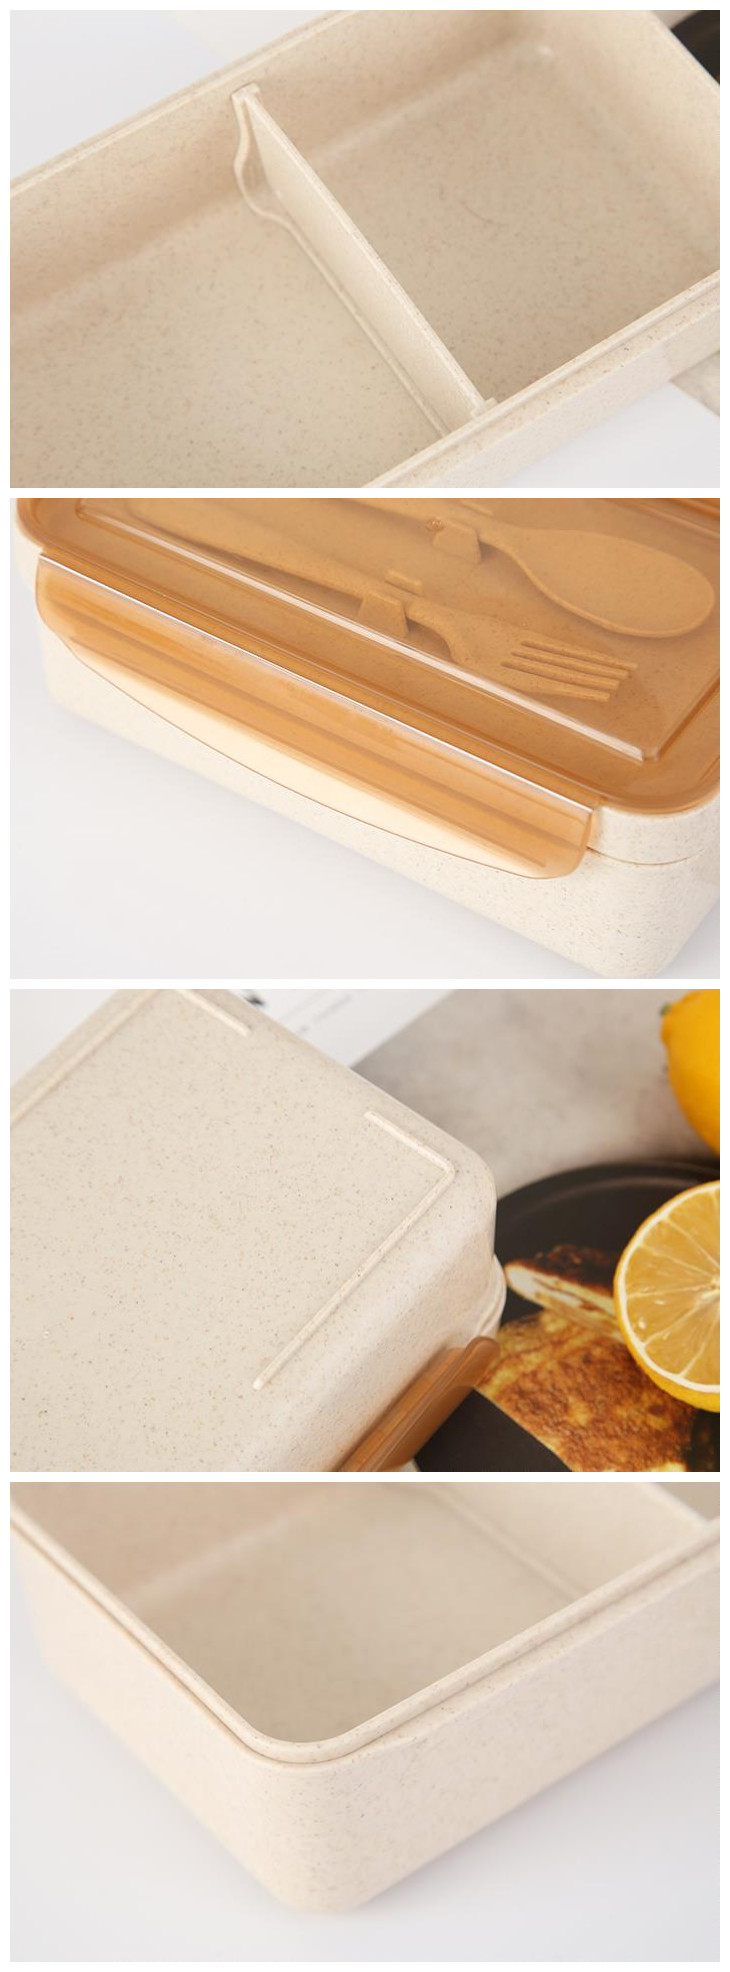 japan style cute custom logo printing wheat straw plastic  lunch box plastic container plastic bento box with spoon